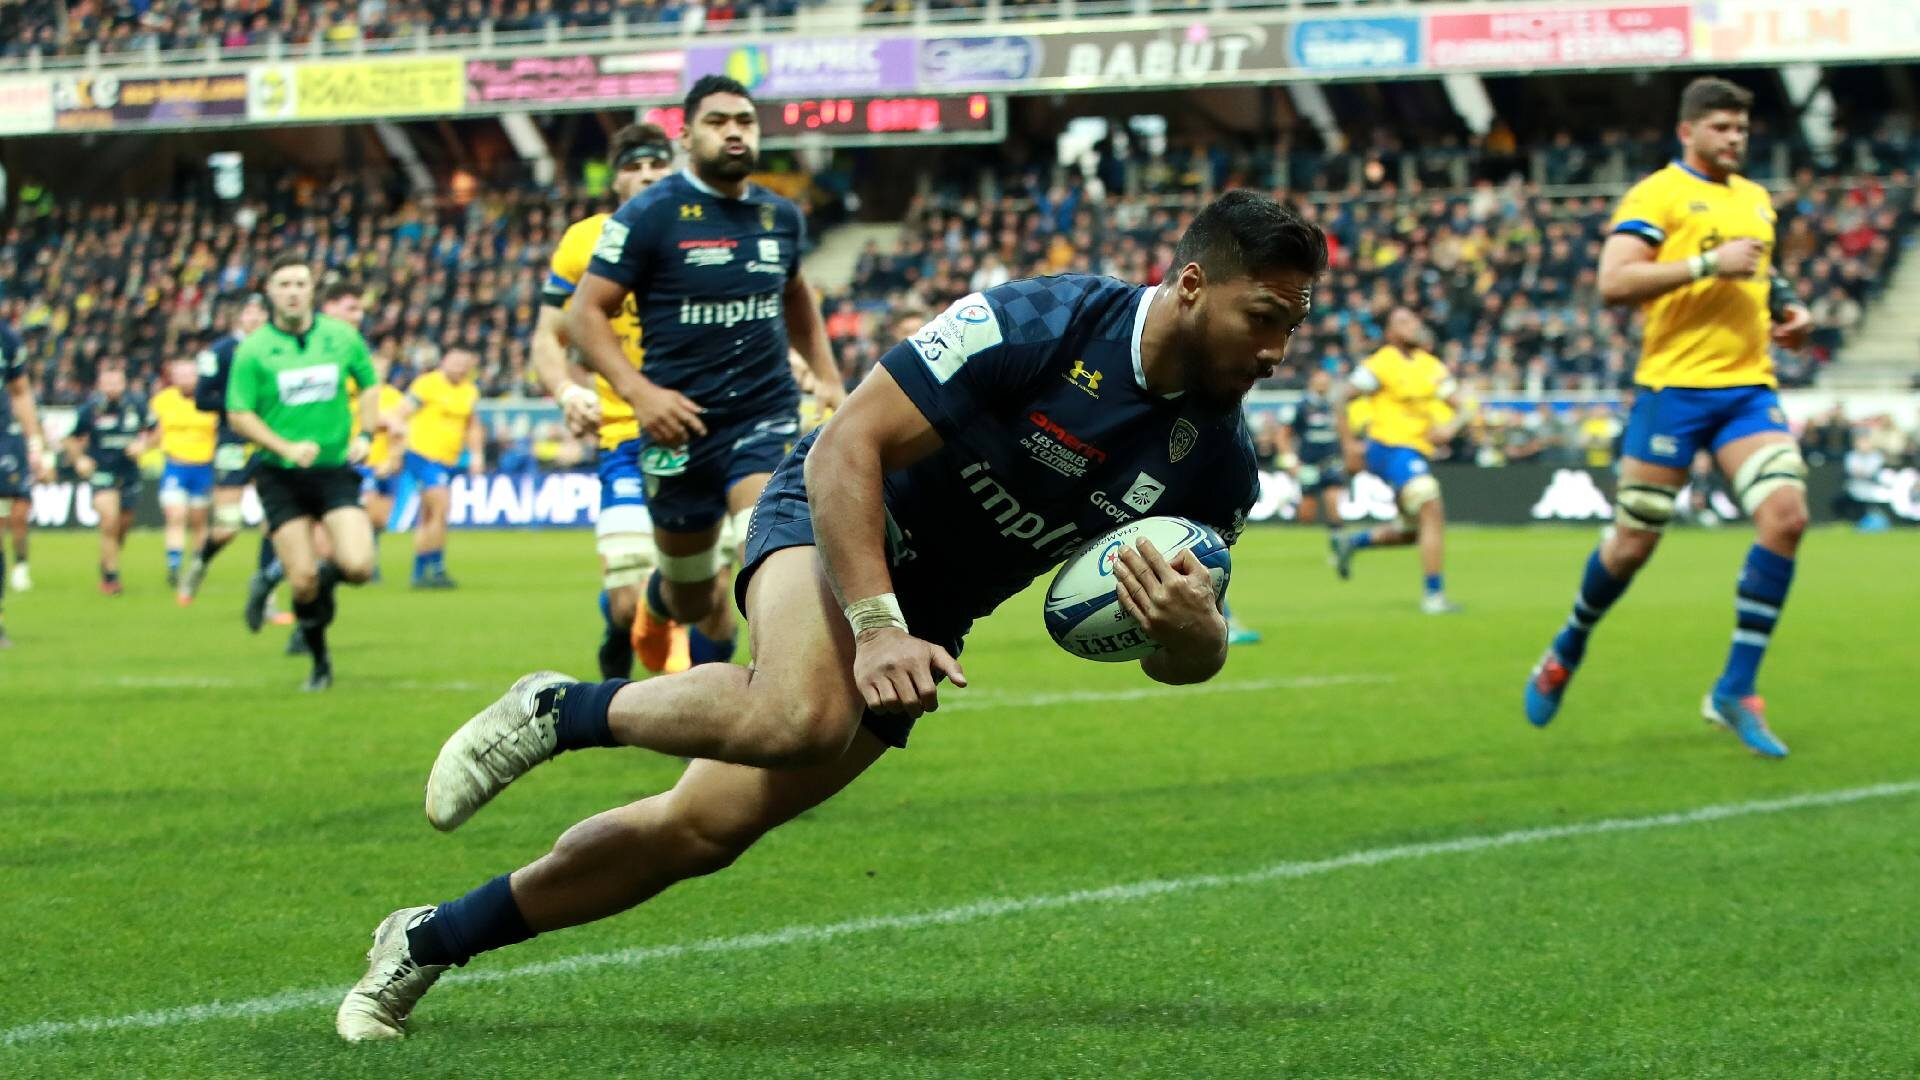 Kiwis in Europe: George Moala pick of the bunch in commanding performance for Clermont